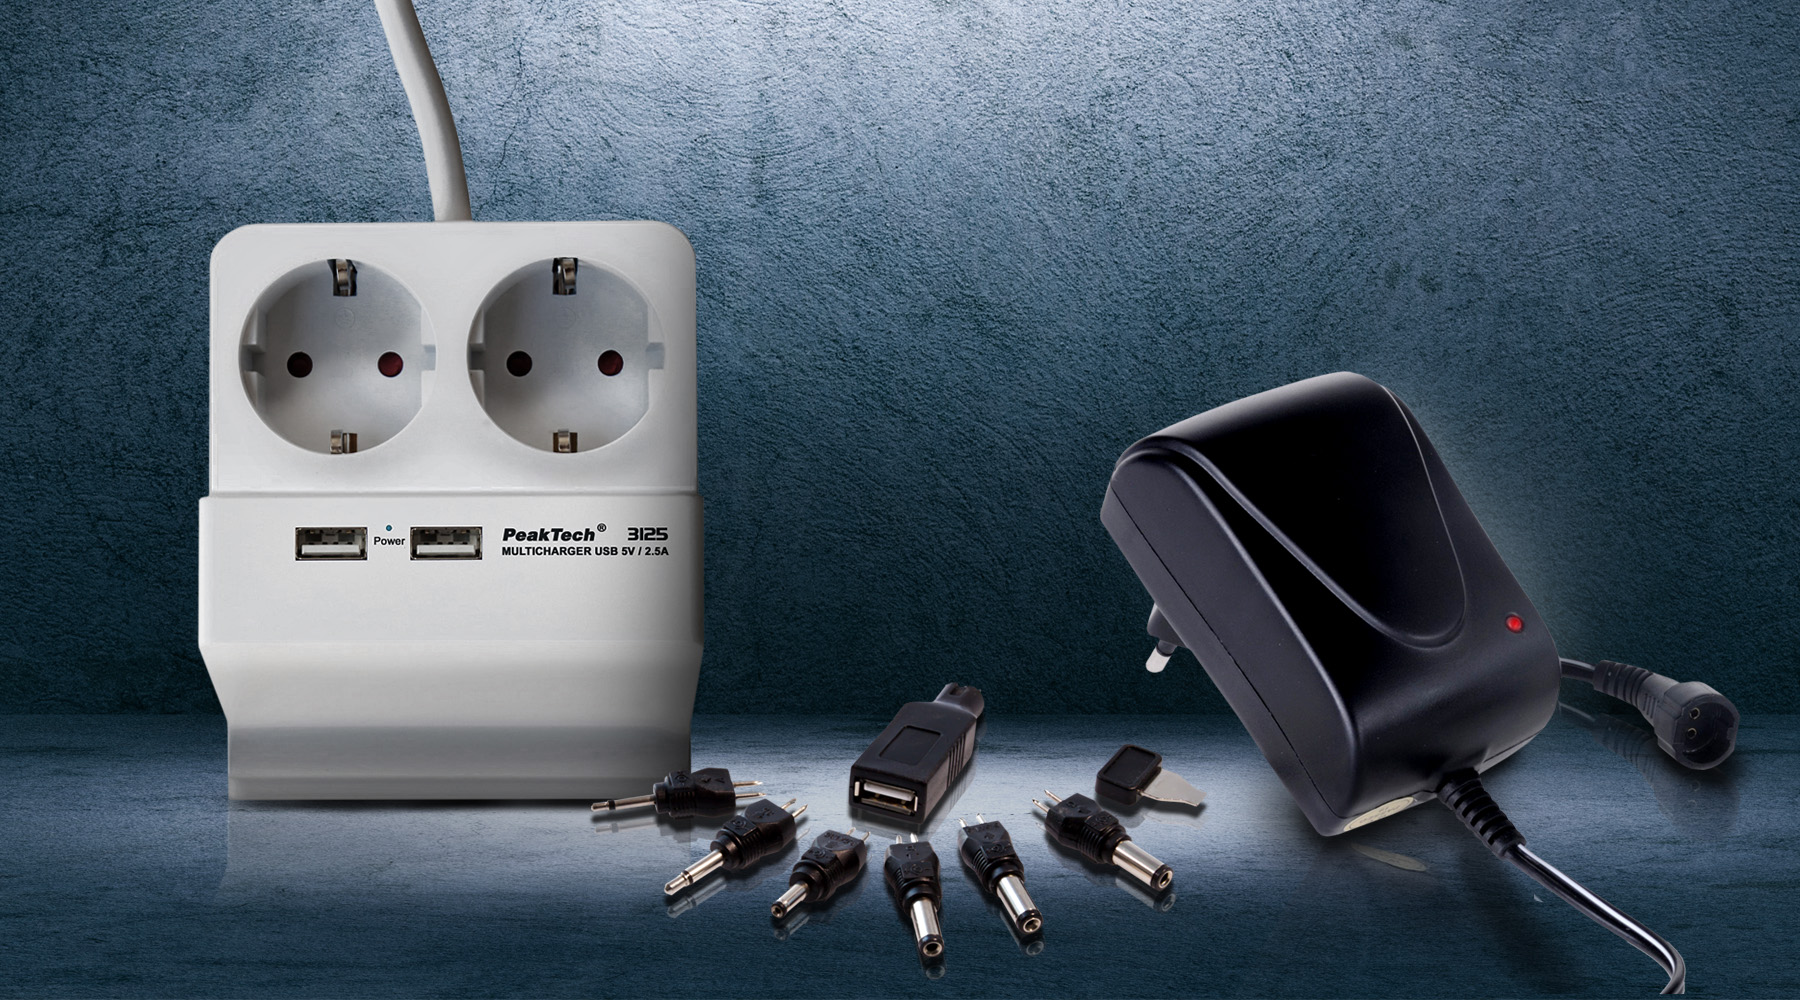 Wall transformer, converters & chargers